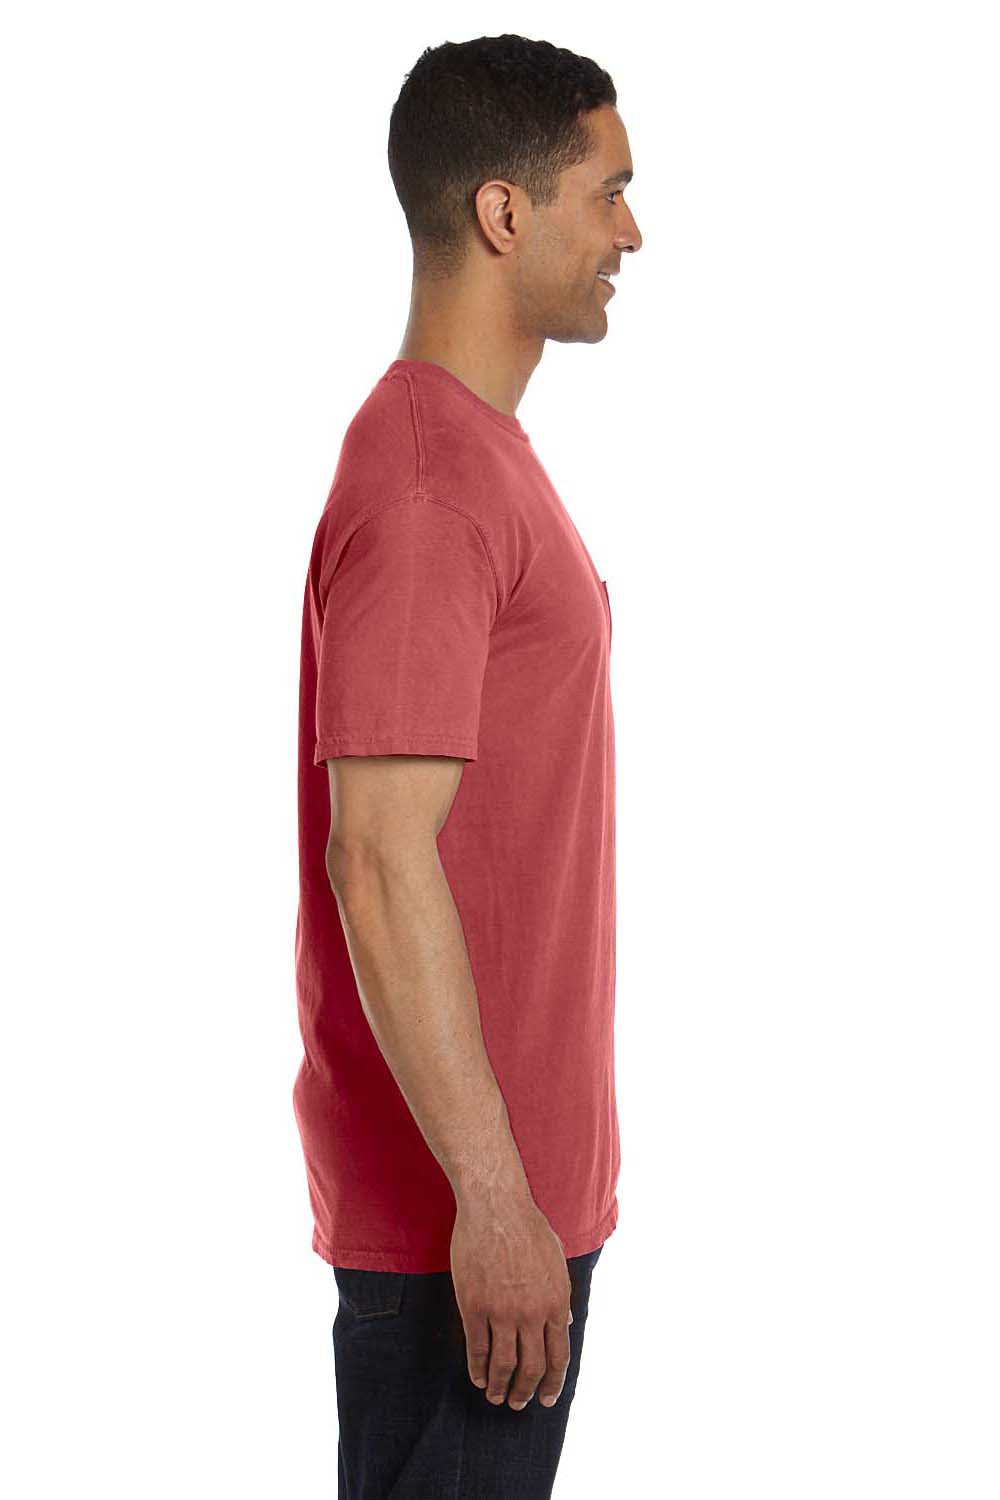 Comfort Colors 6030CC Mens Short Sleeve Crewneck T-Shirt w/ Pocket Crimson Red Side